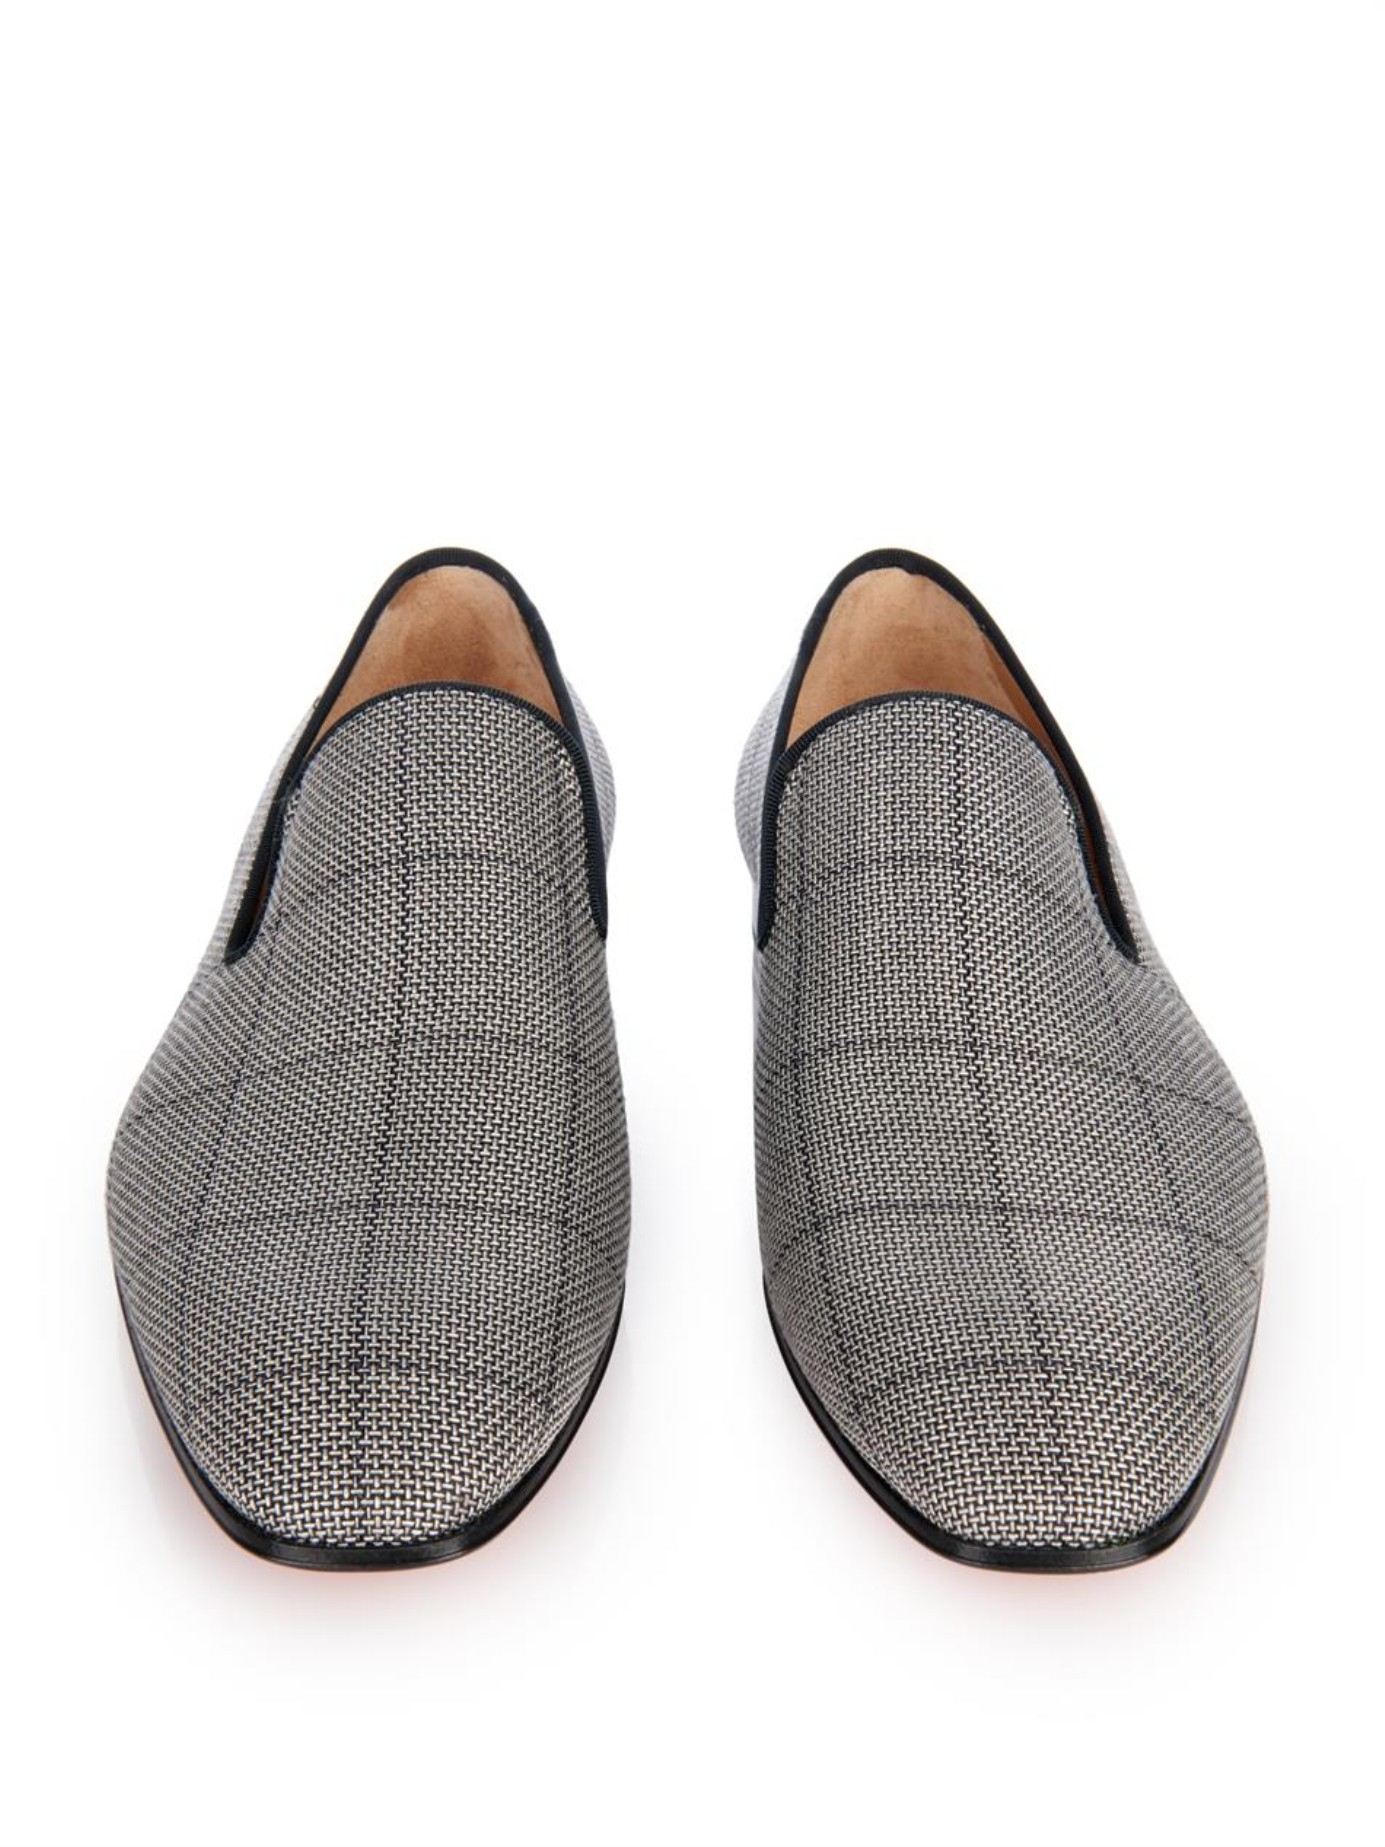 mens louboutin sneakers for sale - Christian louboutin Dandelion Woven-Check Loafers in Gray for Men ...